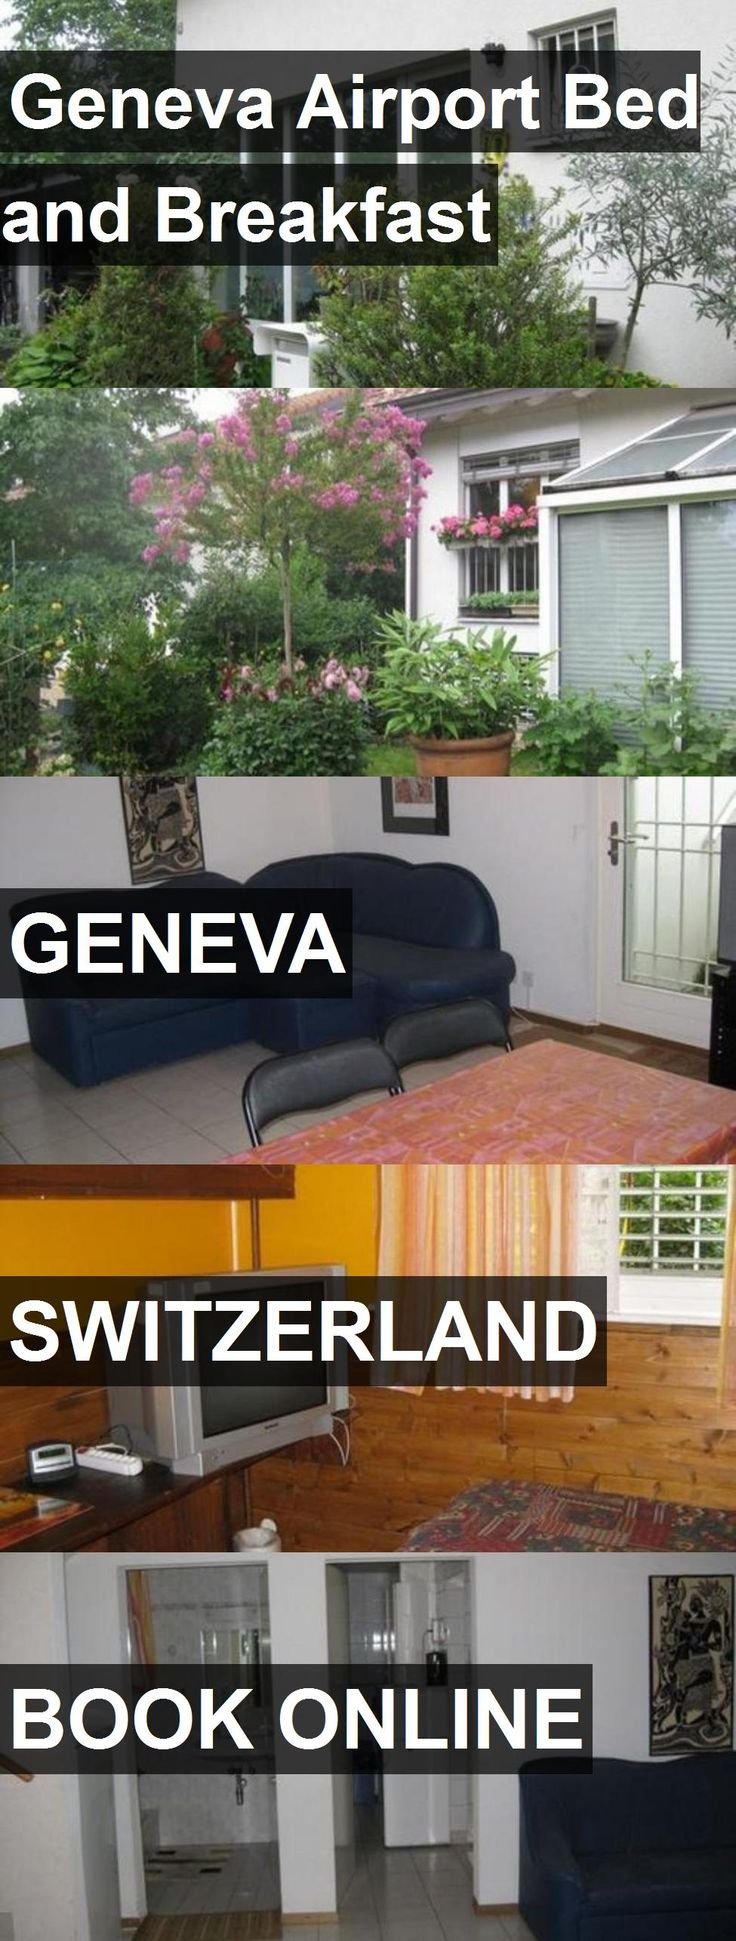 Hotel Geneva Airport Bed and Breakfast in Geneva, Switzerland. For more information, photos, reviews and best prices please follow the link. #Switzerland #Geneva #GenevaAirportBedandBreakfast #hotel #travel #vacation